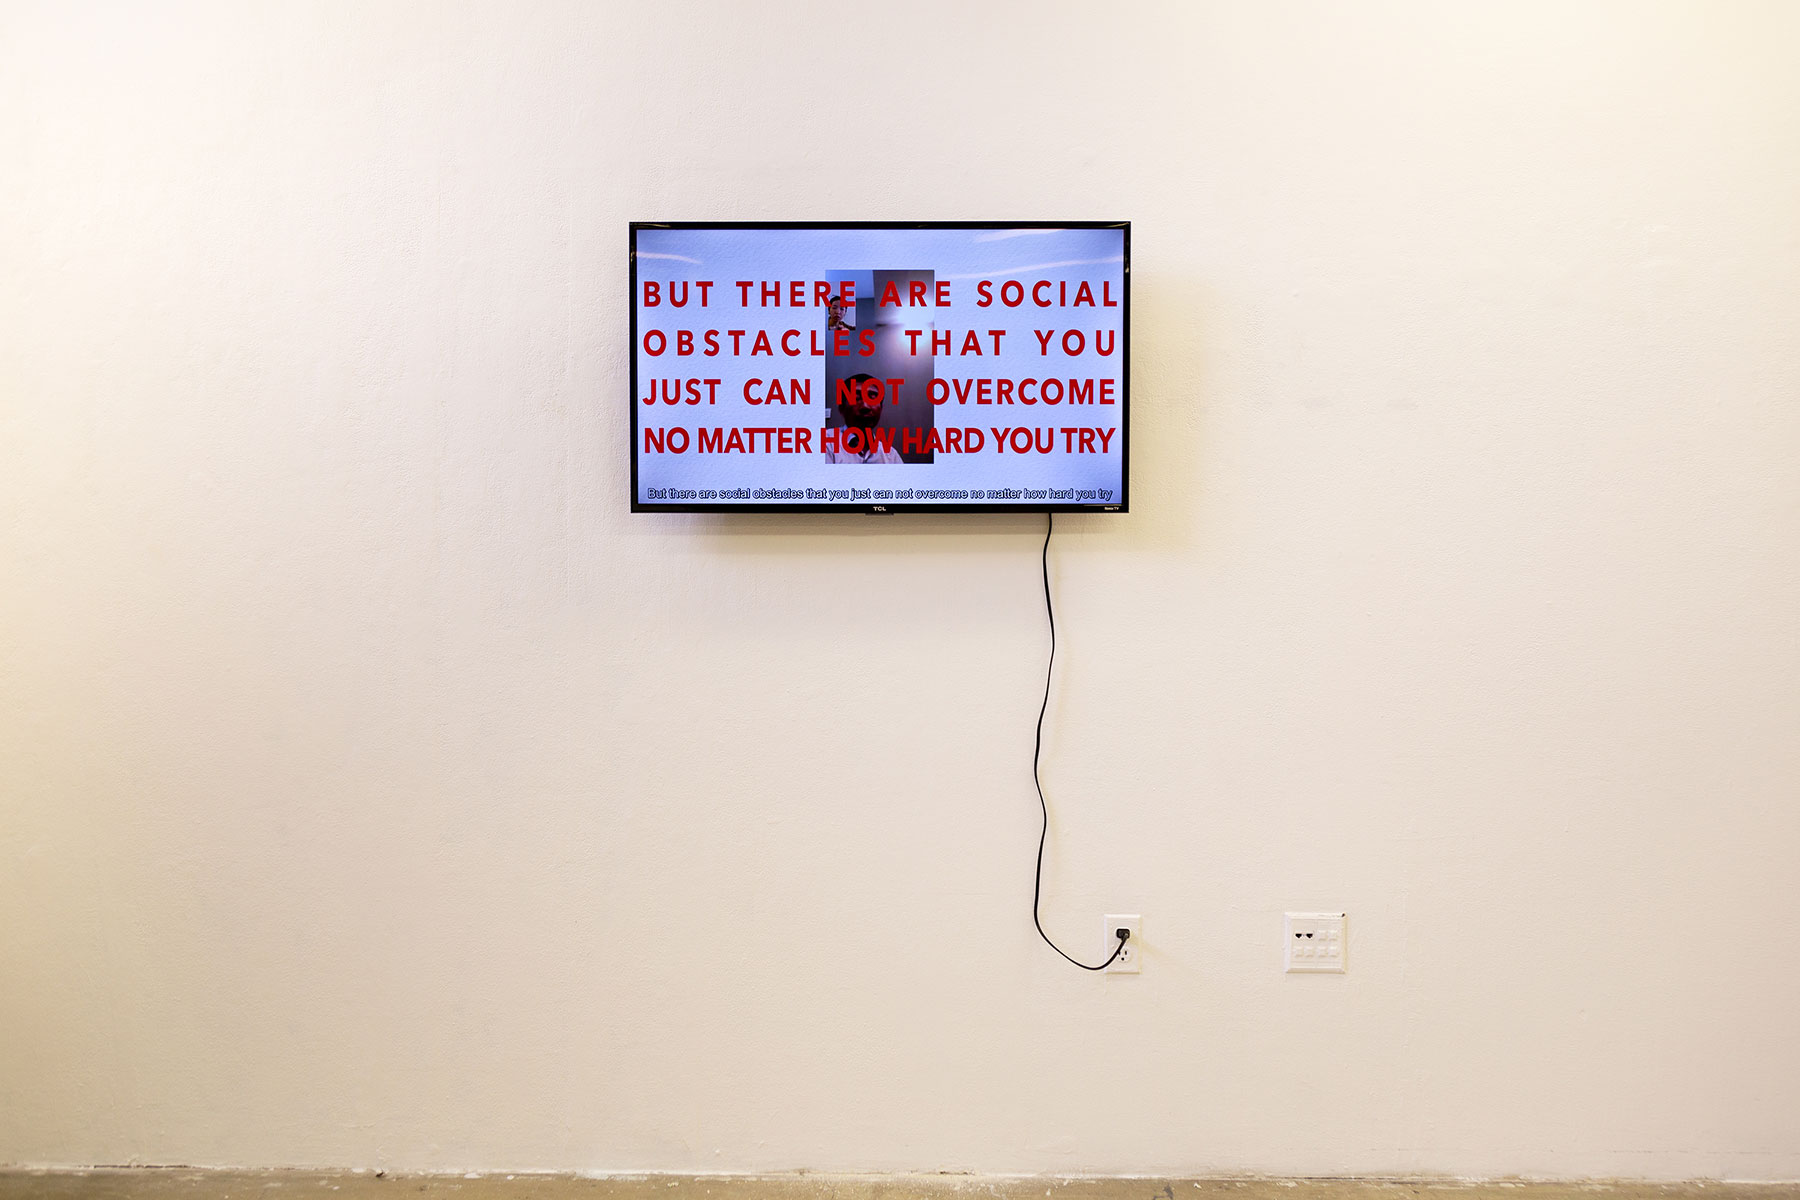 """A screen mounted on a white wall. Text on screen reads, """"But there are social obstacles that you just can not overcome no matter how hard you try"""" in all capital letters. The text is laid oer an image of two people speaking via video call on a smartphone."""